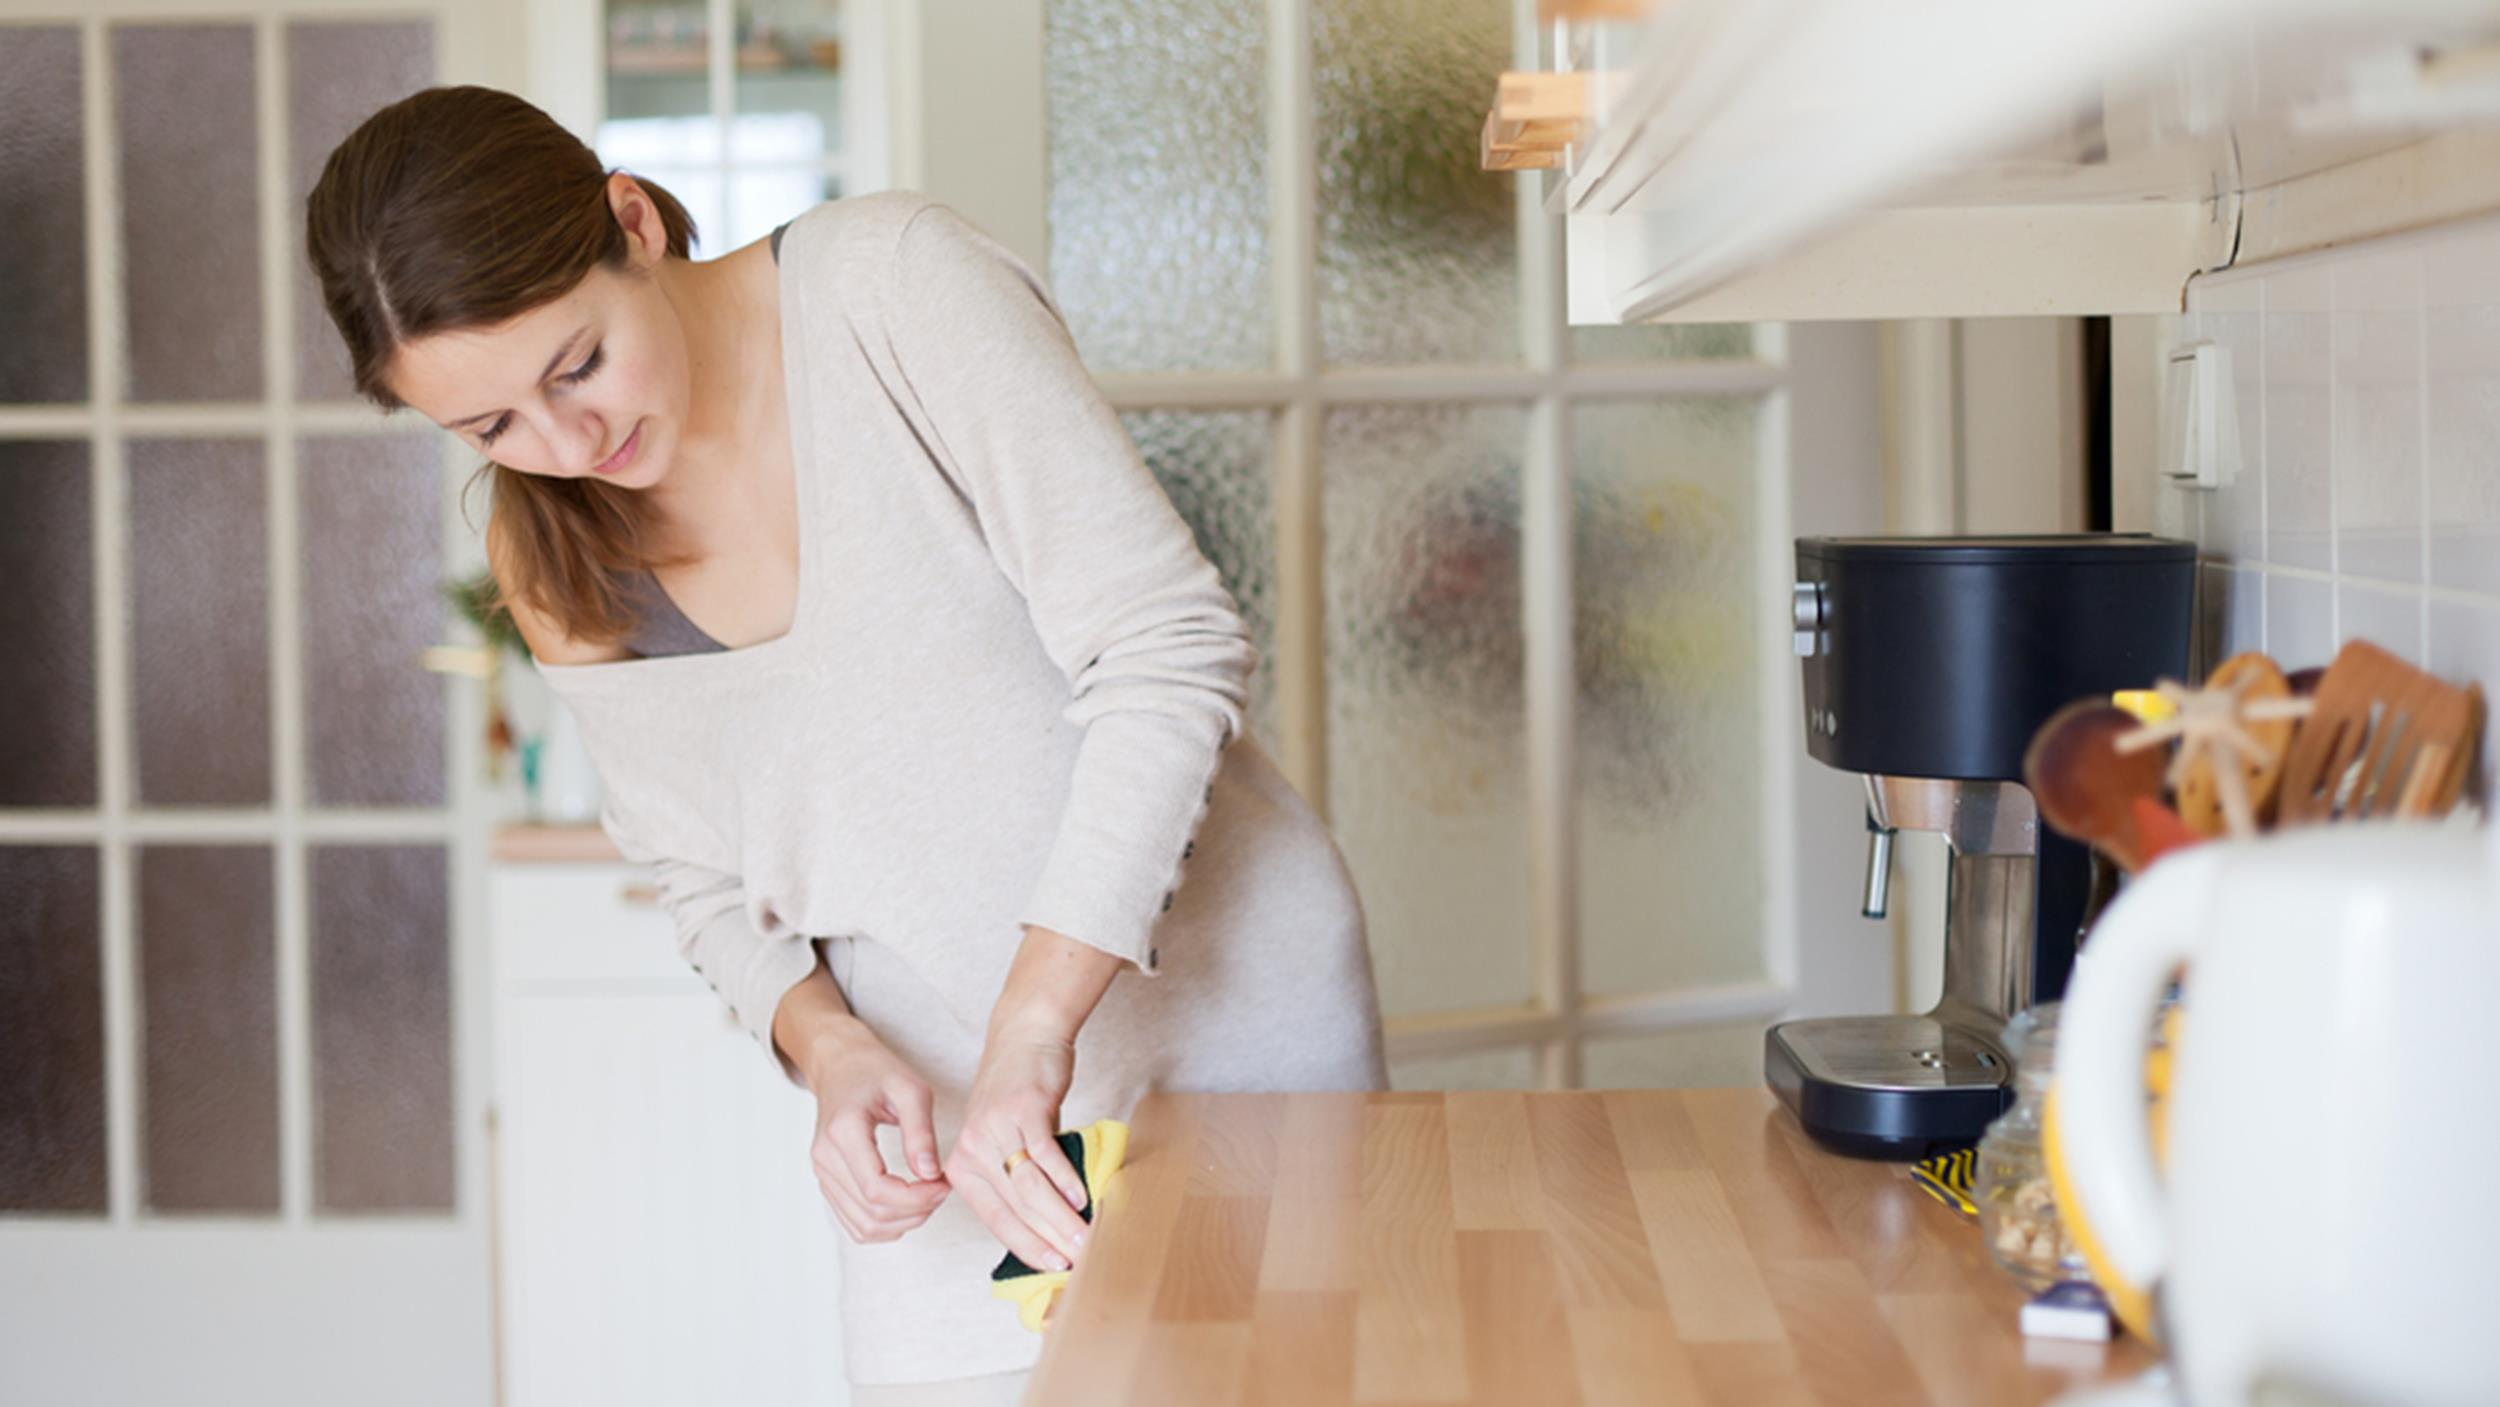 Spring cleaning: How to clean your kitchen in minutes